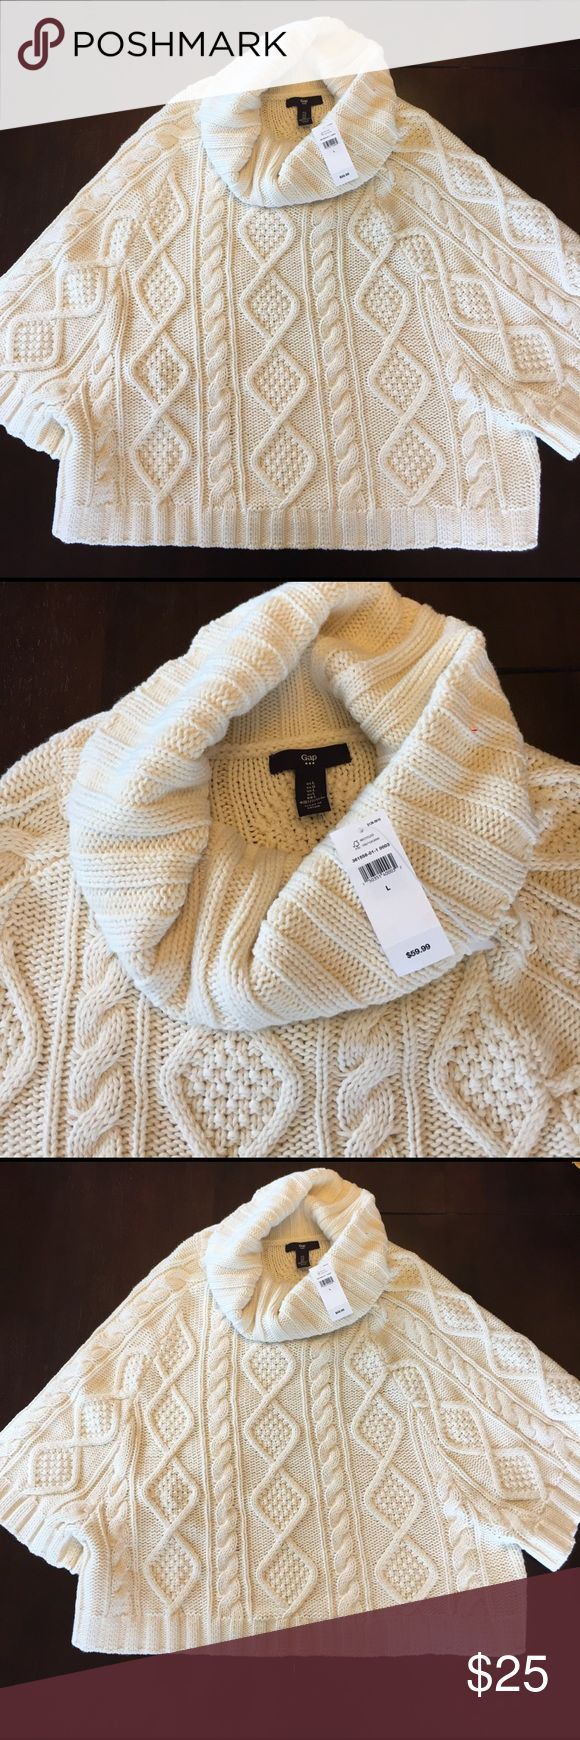 New with tags GAP beautiful cable knit girl poncho New with tags GAP beautiful cable knit girls poncho! Great for chilly spring nights or eating in air conditioning( restaurants and movies) PRICE IS GREAT AND FIRM!! GAP Shirts & Tops Sweaters